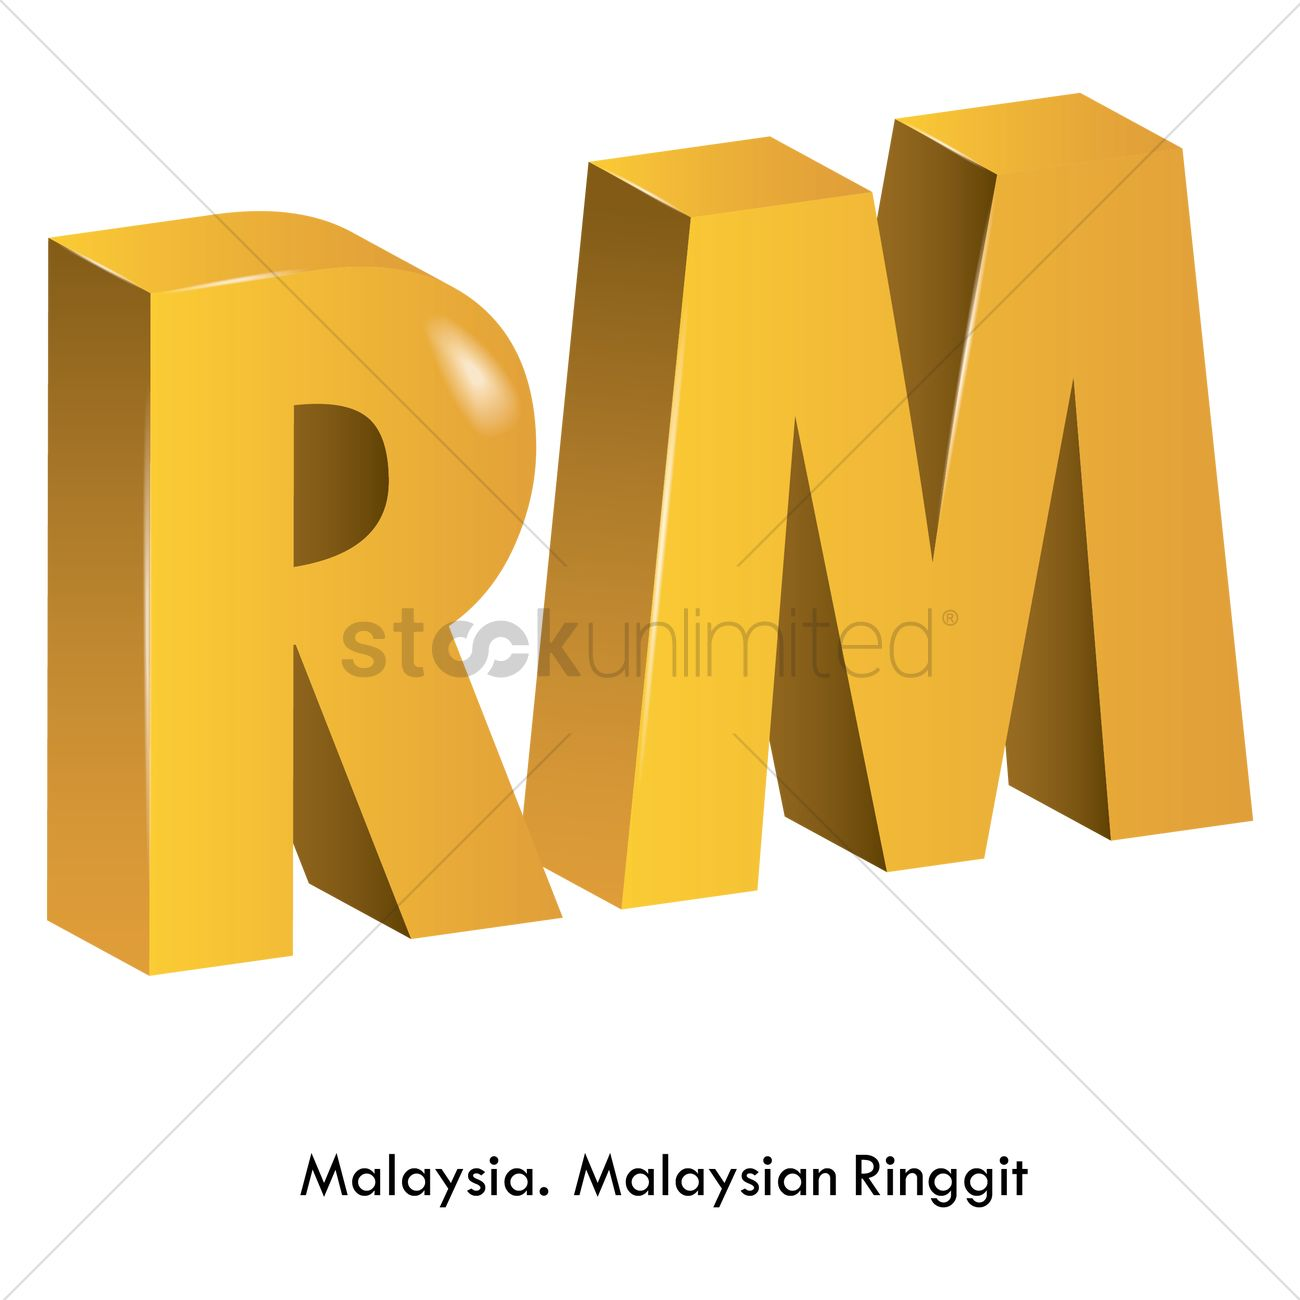 Malaysian Ringgit Currency Vector Image 1821518 Stockunlimited